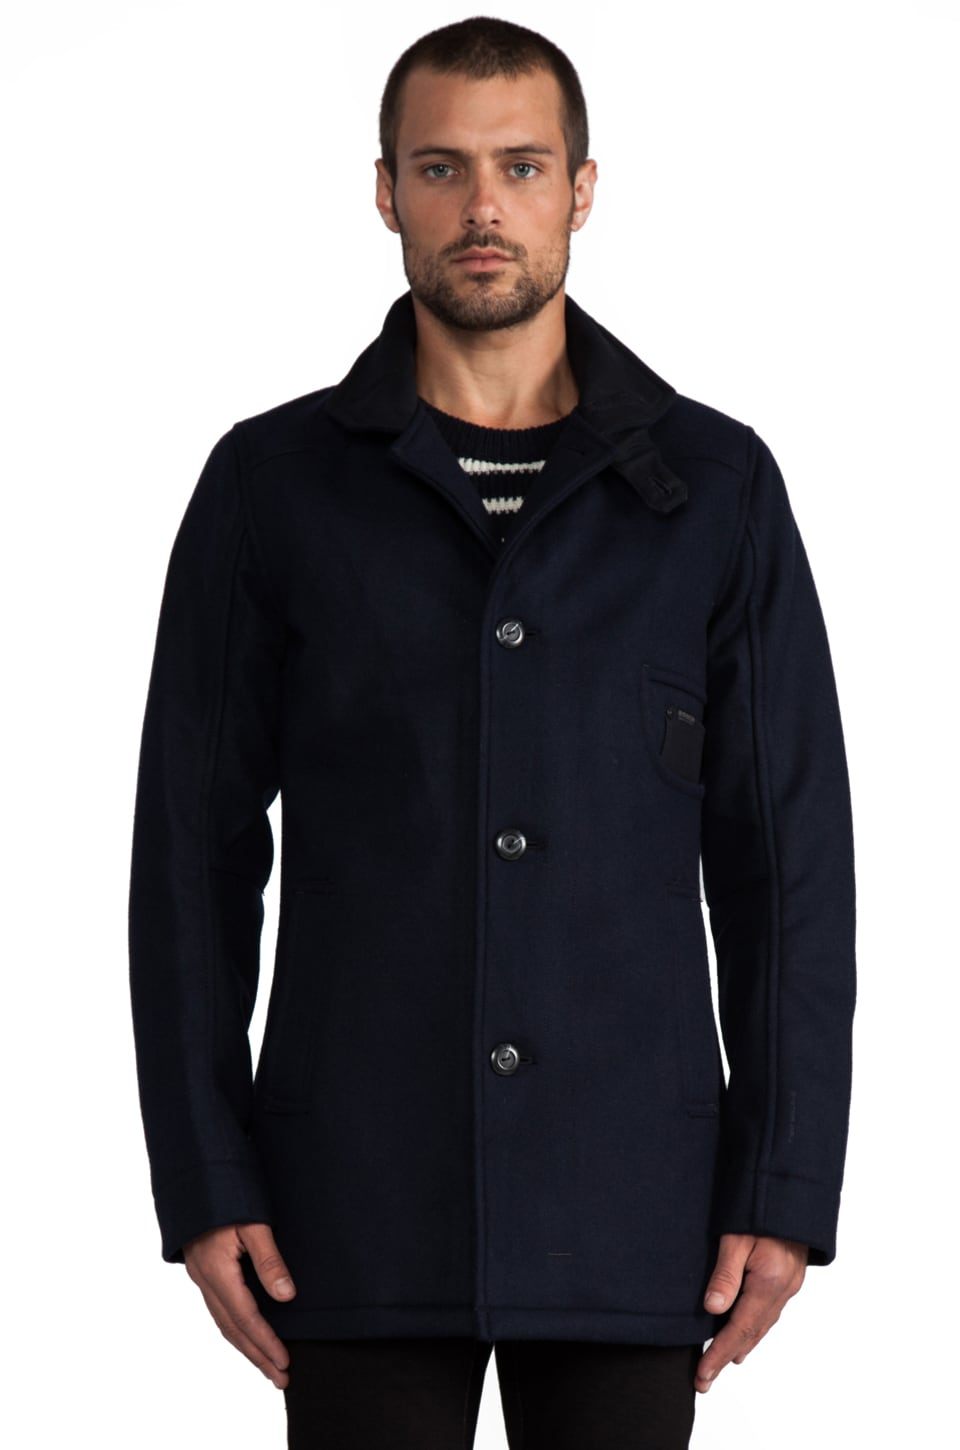 G-Star Raw Radar Garber Jacket in Mazarine Blue